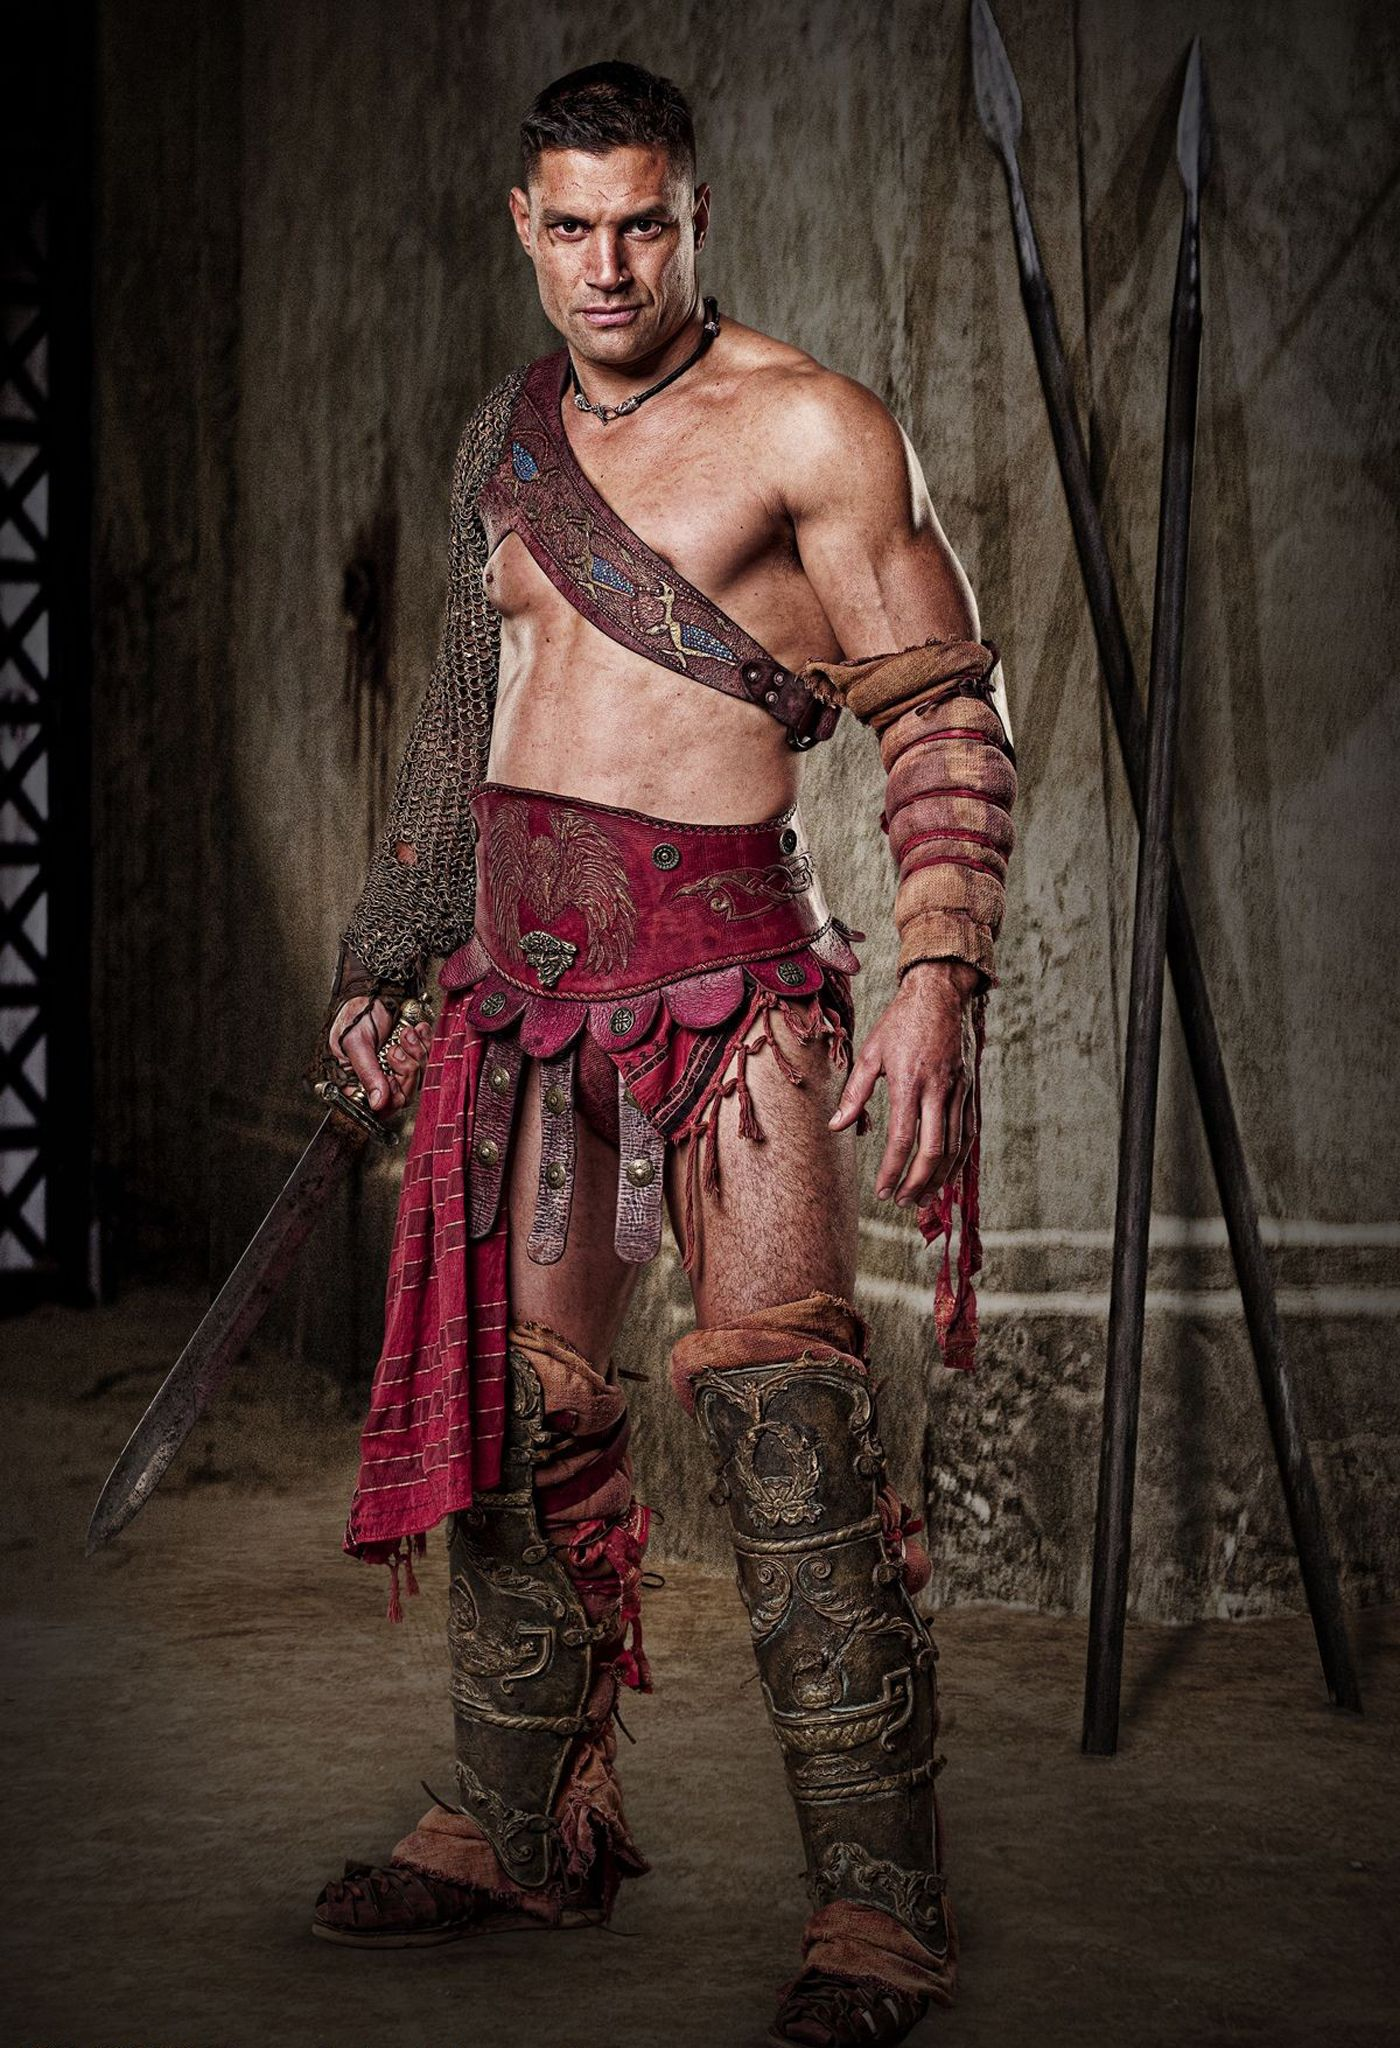 Laurence olivier spartacus quotes - Spartacus Season 1 Blood And Sand Promo